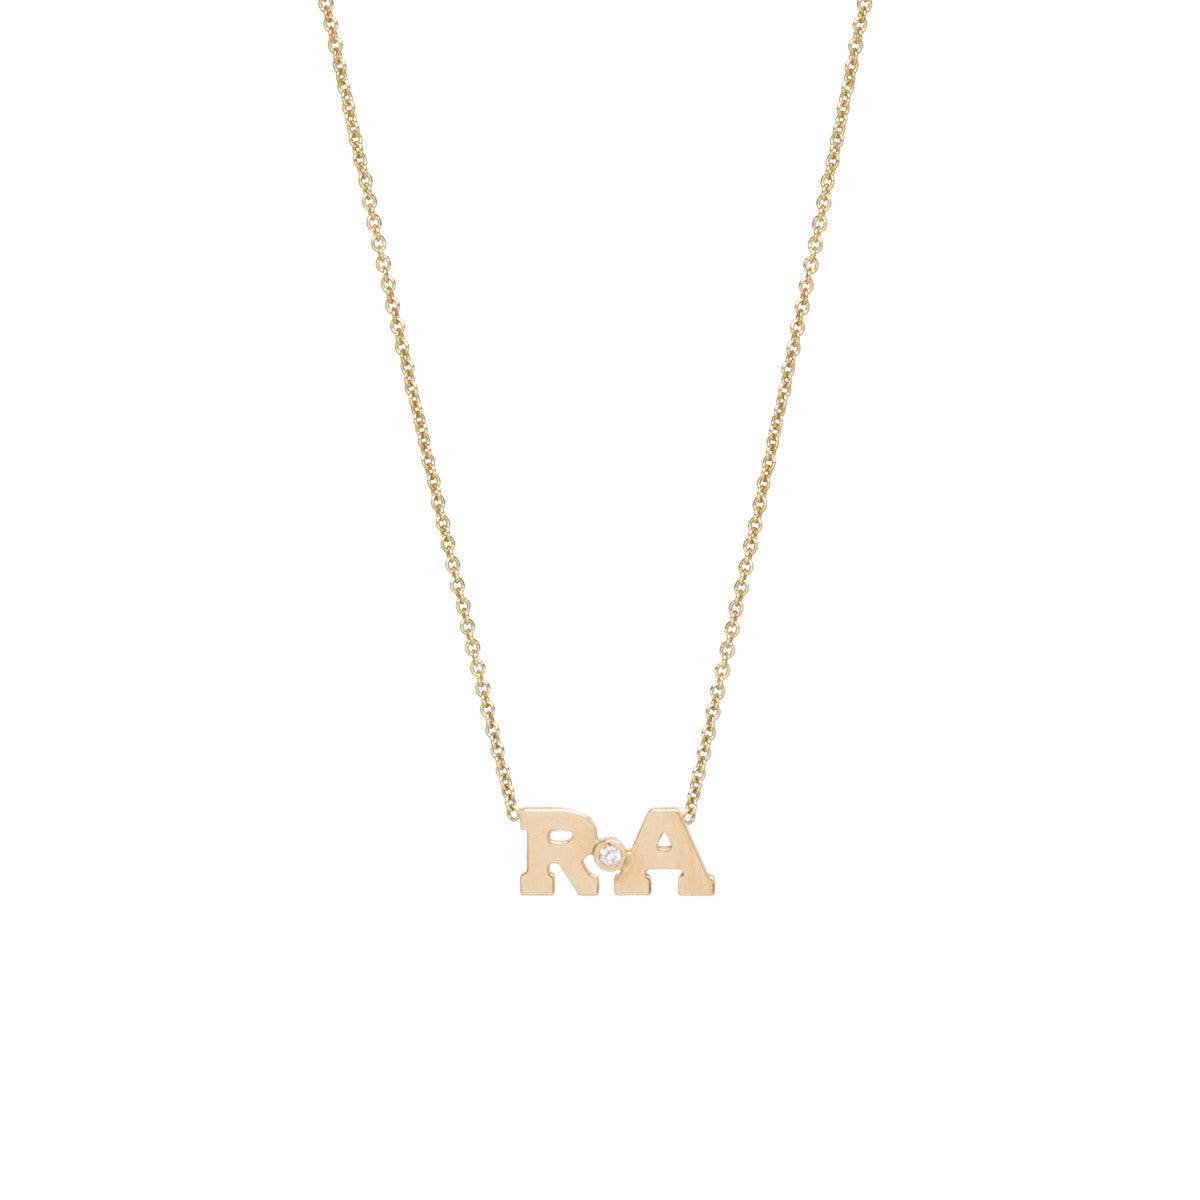 Zoë Chicco 14kt Yellow Gold Diamond 2 Letter Necklace